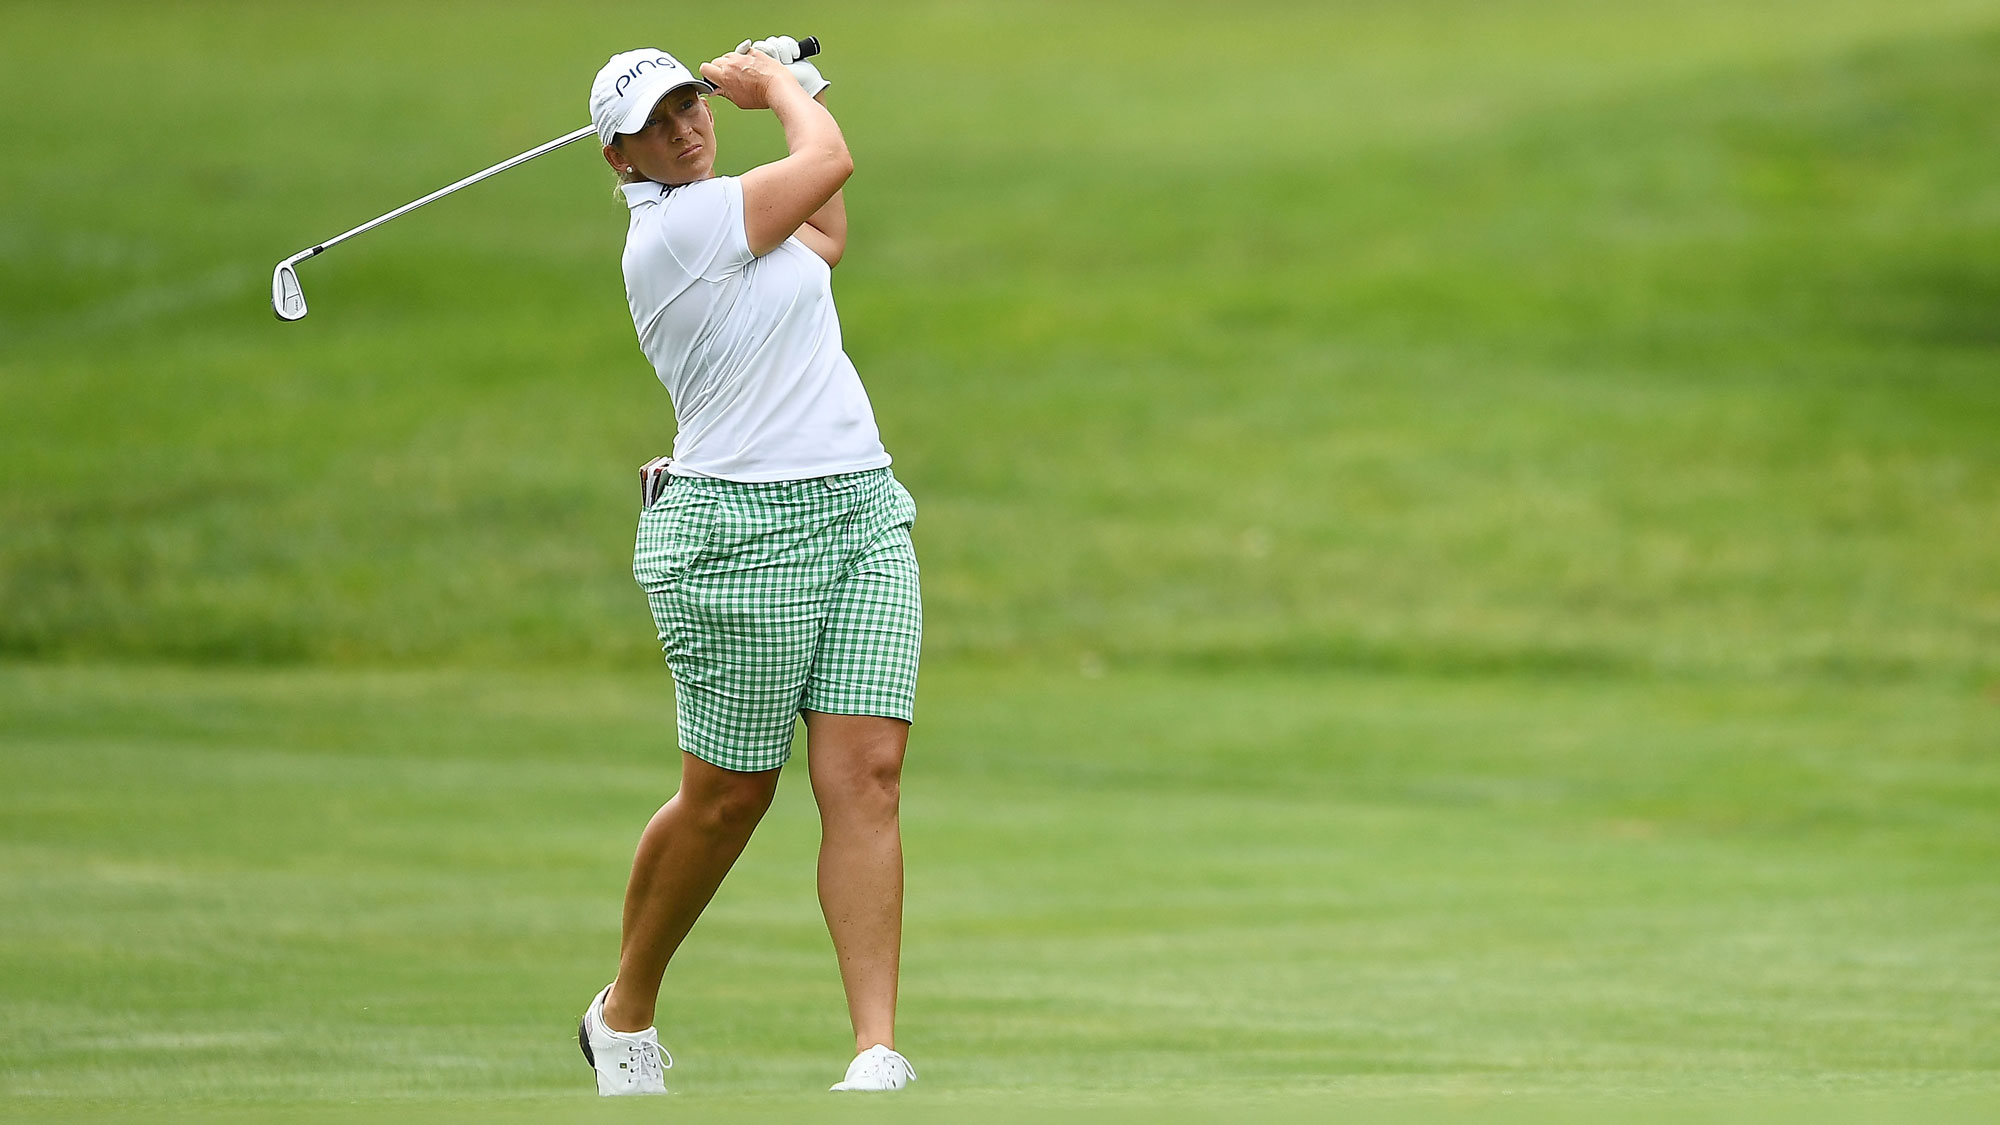 Angela Stanford at the Meijer LPGA Classic